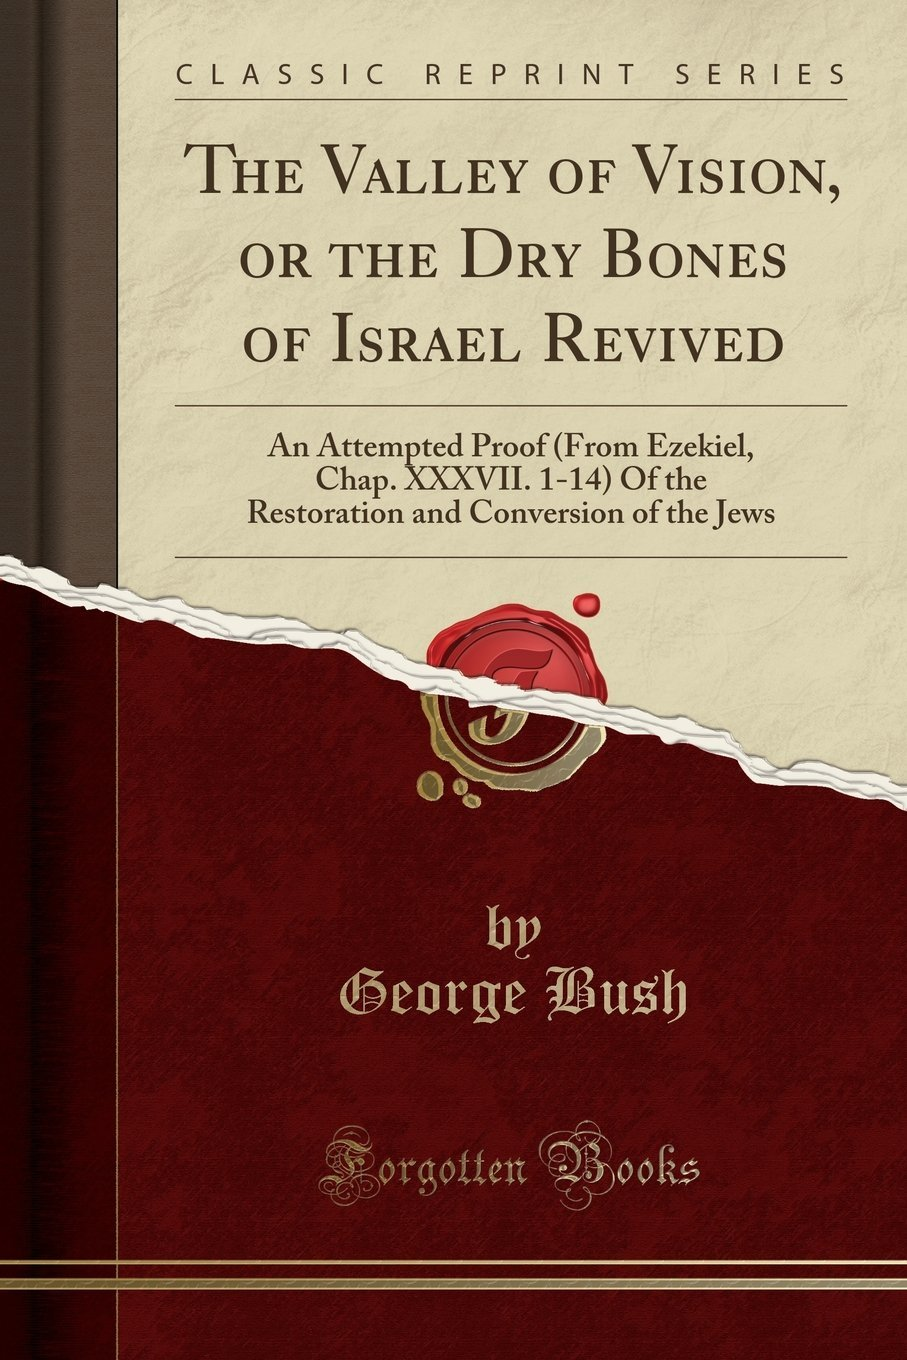 Download The Valley of Vision, or the Dry Bones of Israel Revived: An Attempted Proof (From Ezekiel, Chap. XXXVII. 1-14) Of the Restoration and Conversion of the Jews (Classic Reprint) pdf epub